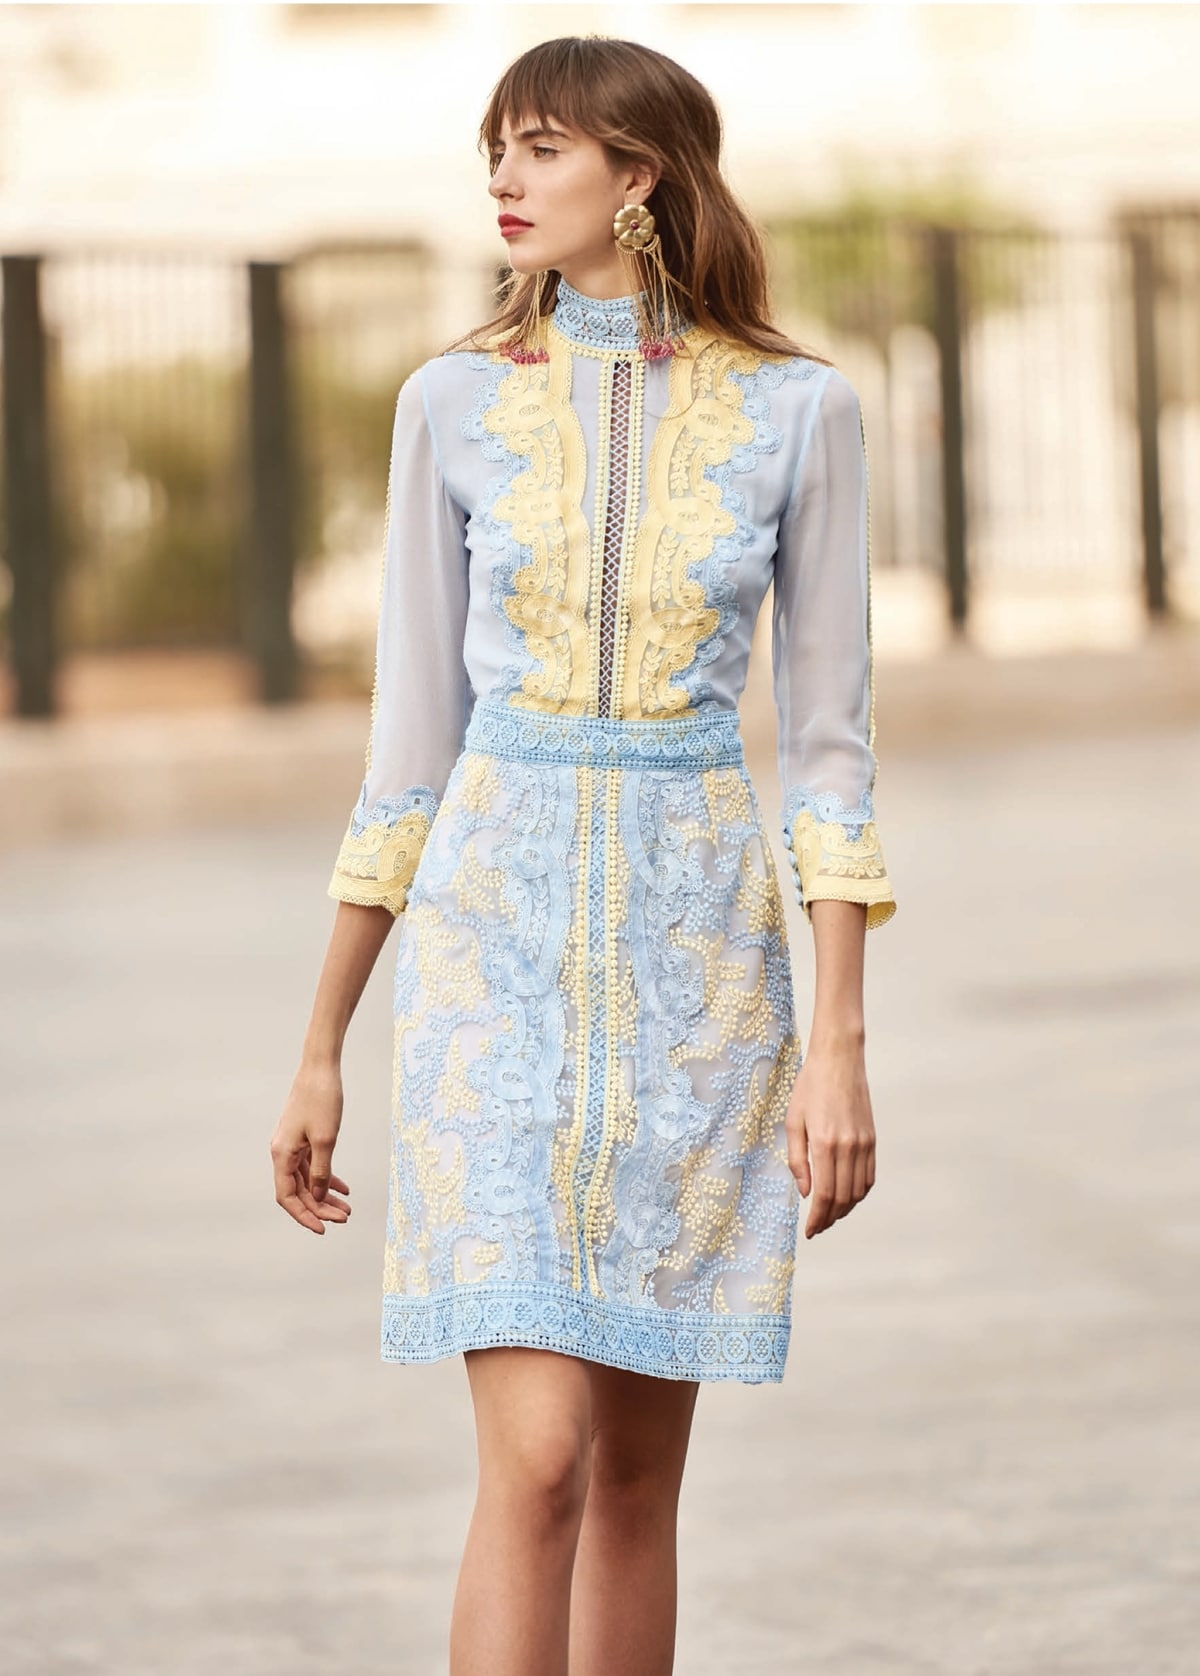 Short baby blue dress with yellow laced details Christos Costarellos